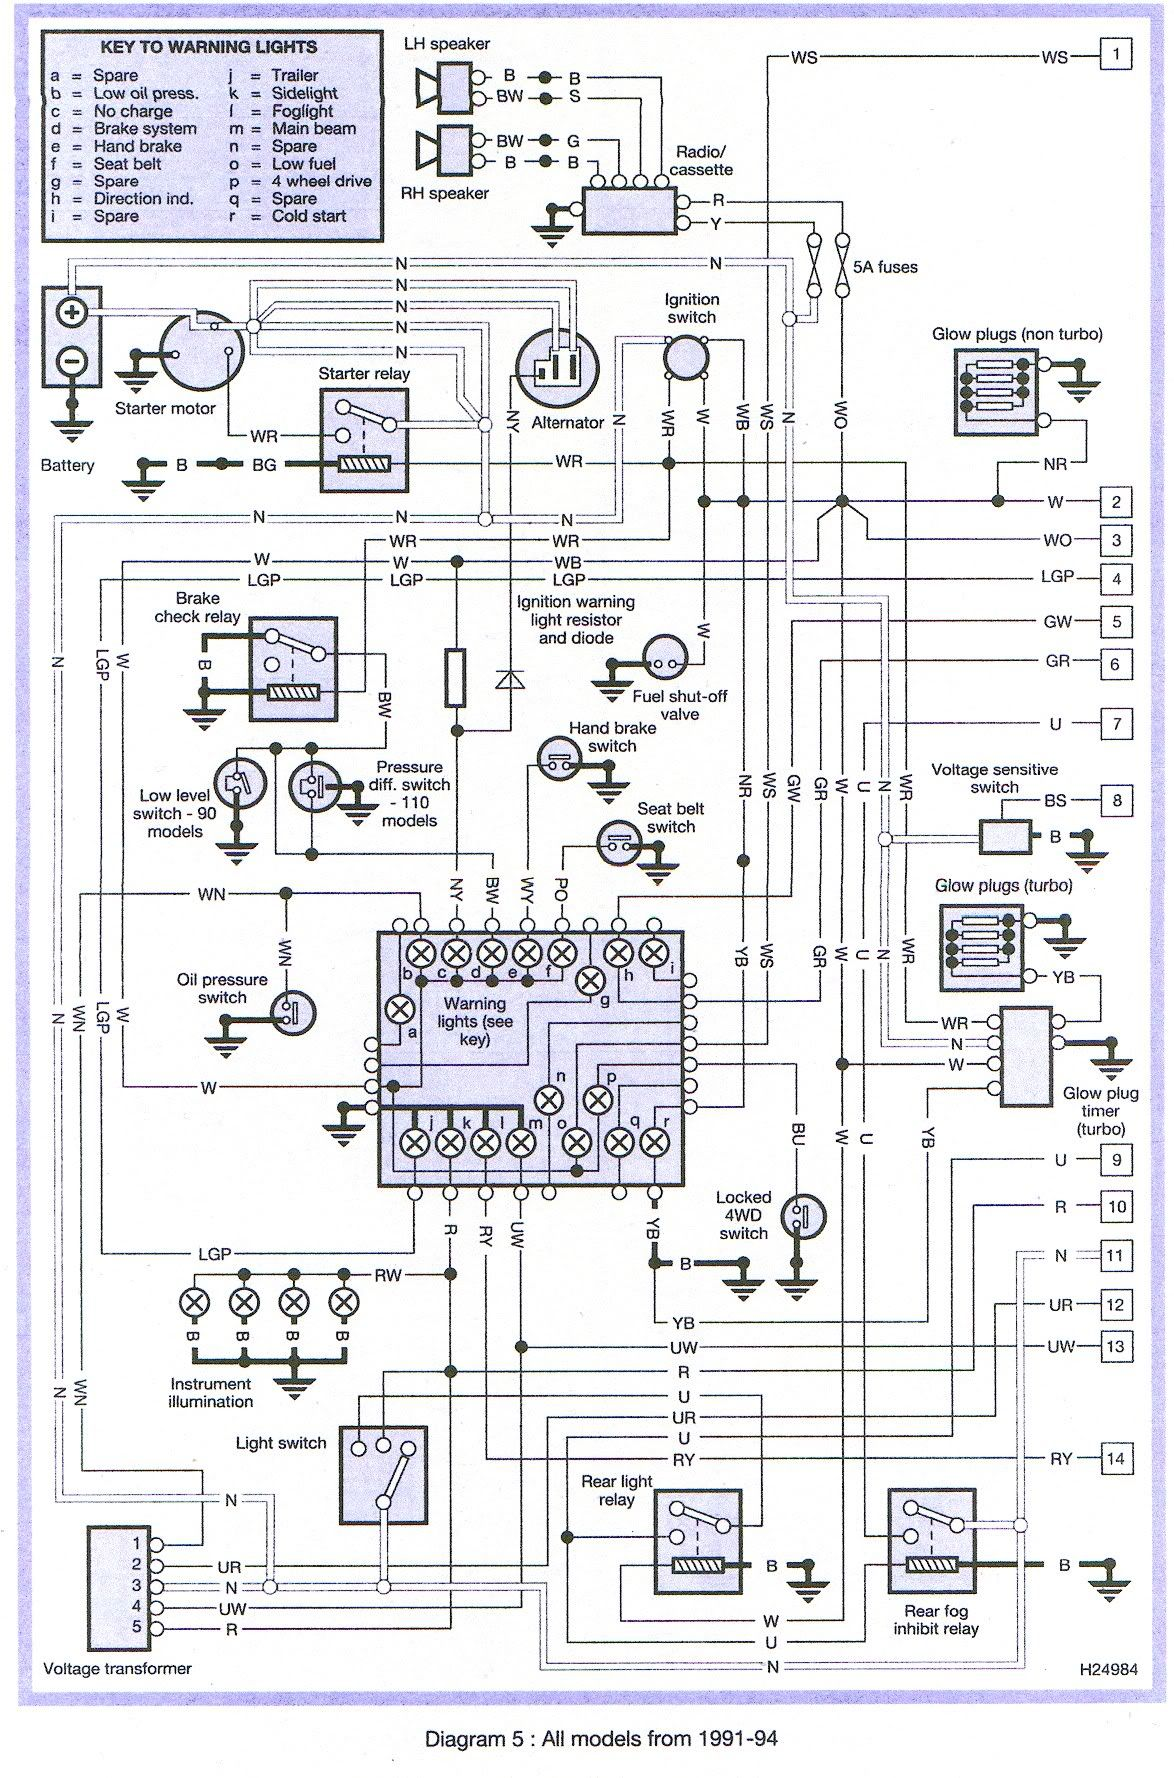 wiring diagram land rover series 3 wiring diagram for rover 45 rover 25 starter motor relay location - impremedia.net #15